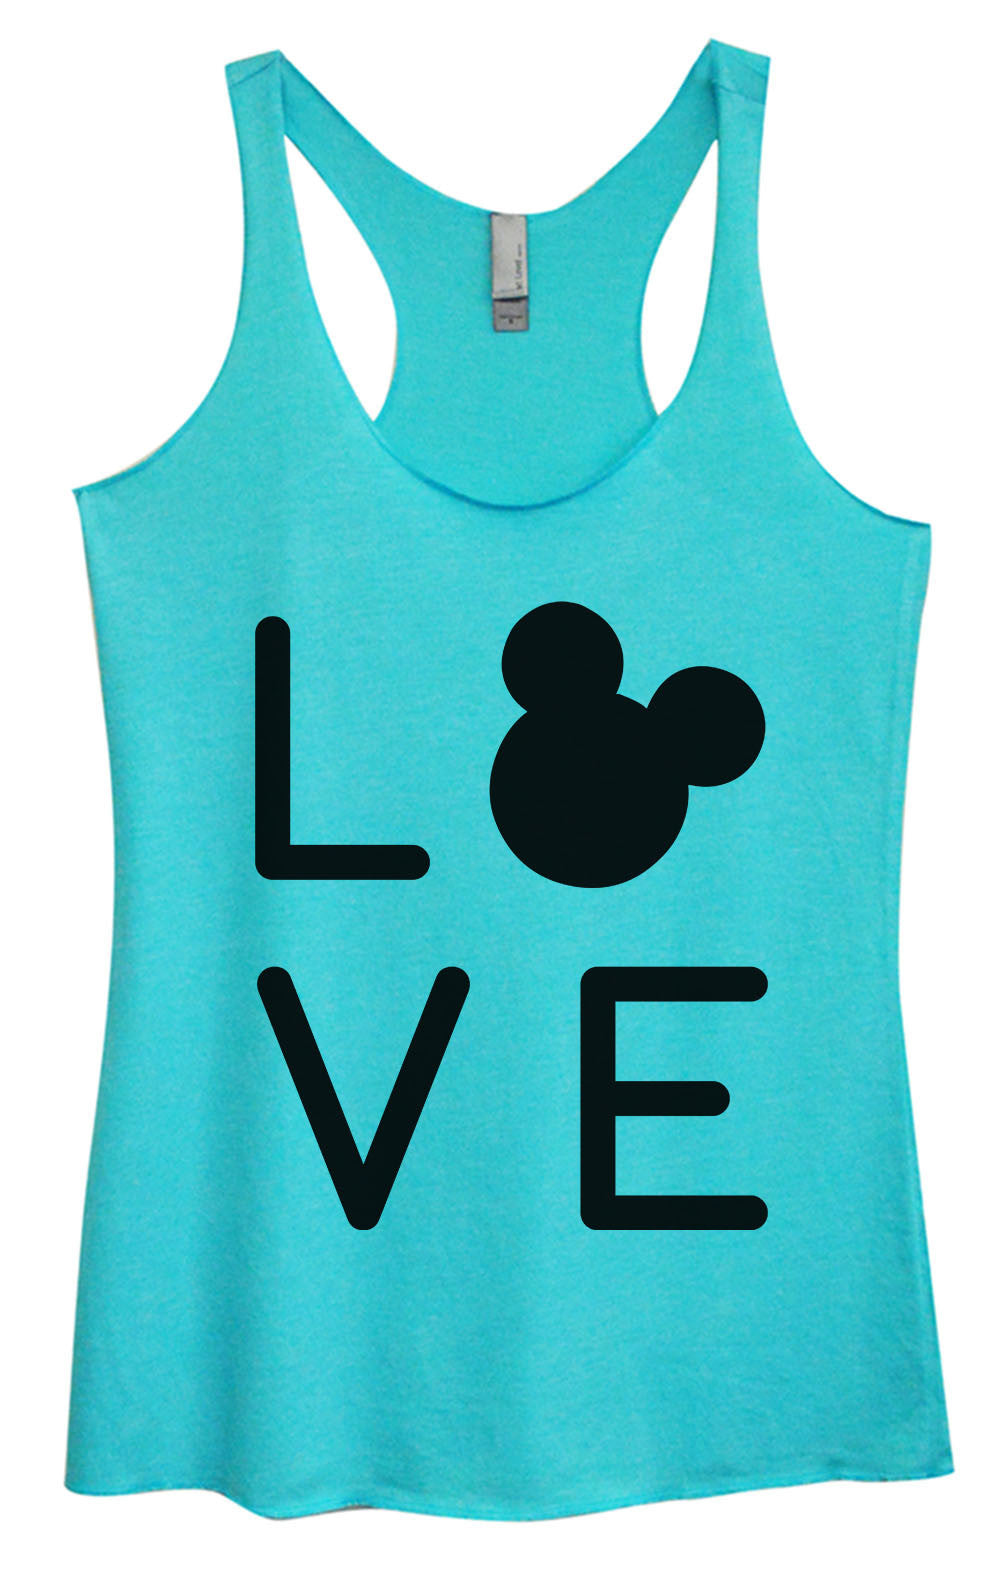 Womens Fashion Triblend Tank Top - Love - Tri-1574 - Funny Shirts Tank Tops Burnouts and Triblends  - 3